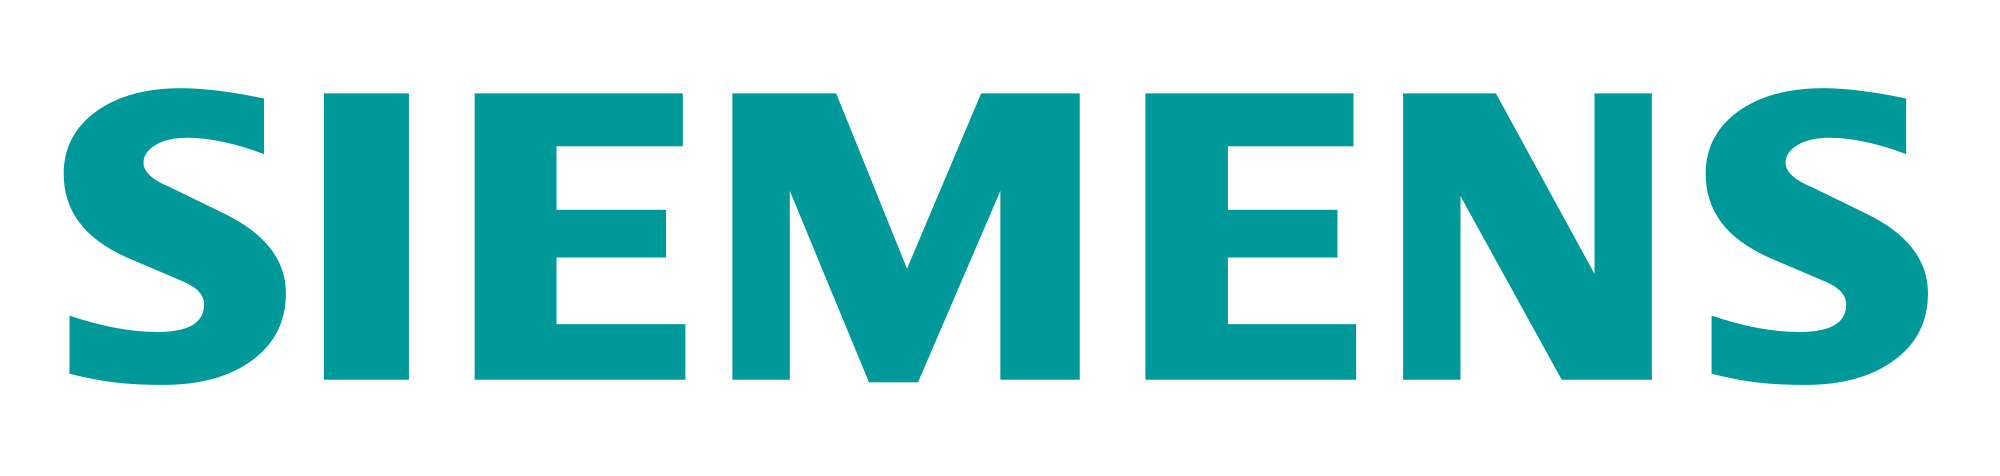 Siemens logo.transparent